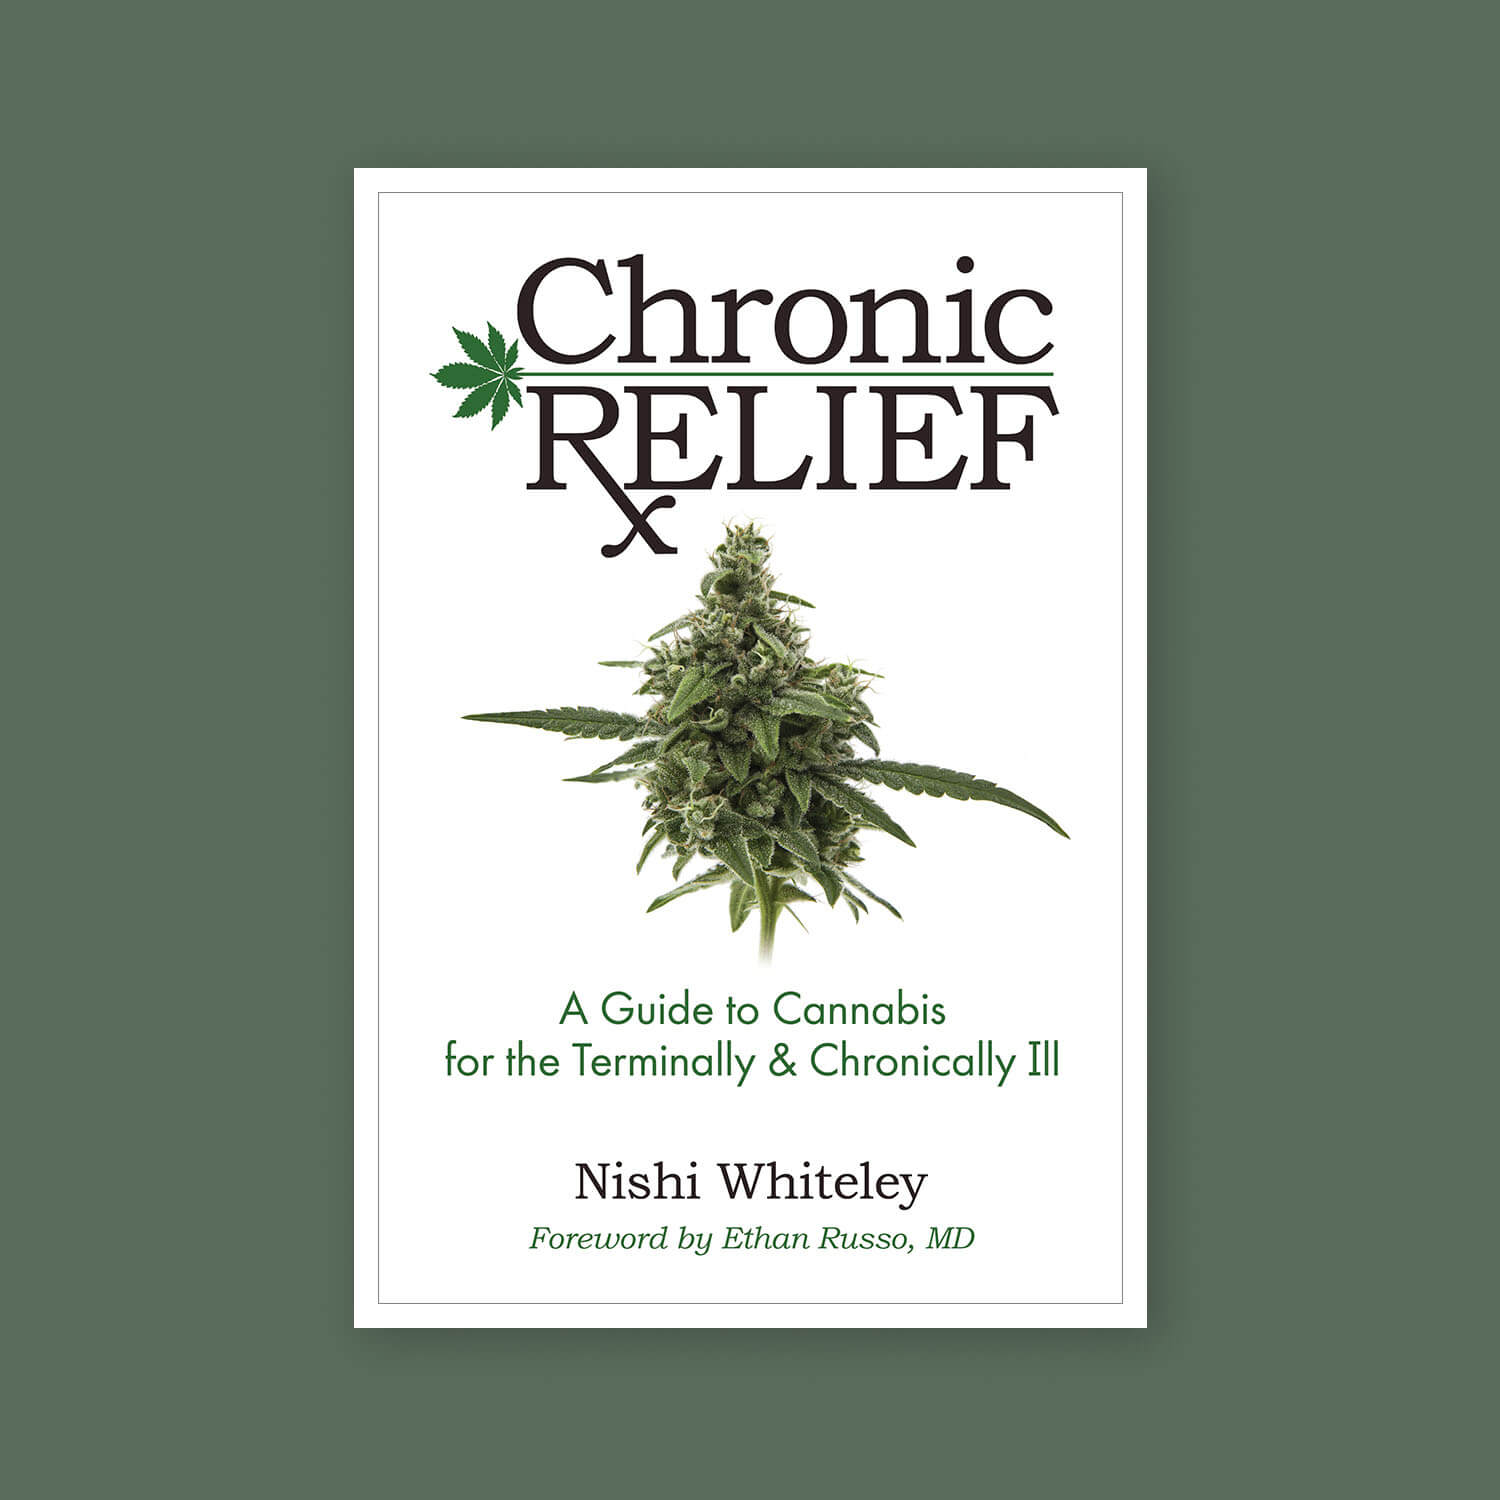 Chronic Relief - Goldleaf Bookshelf